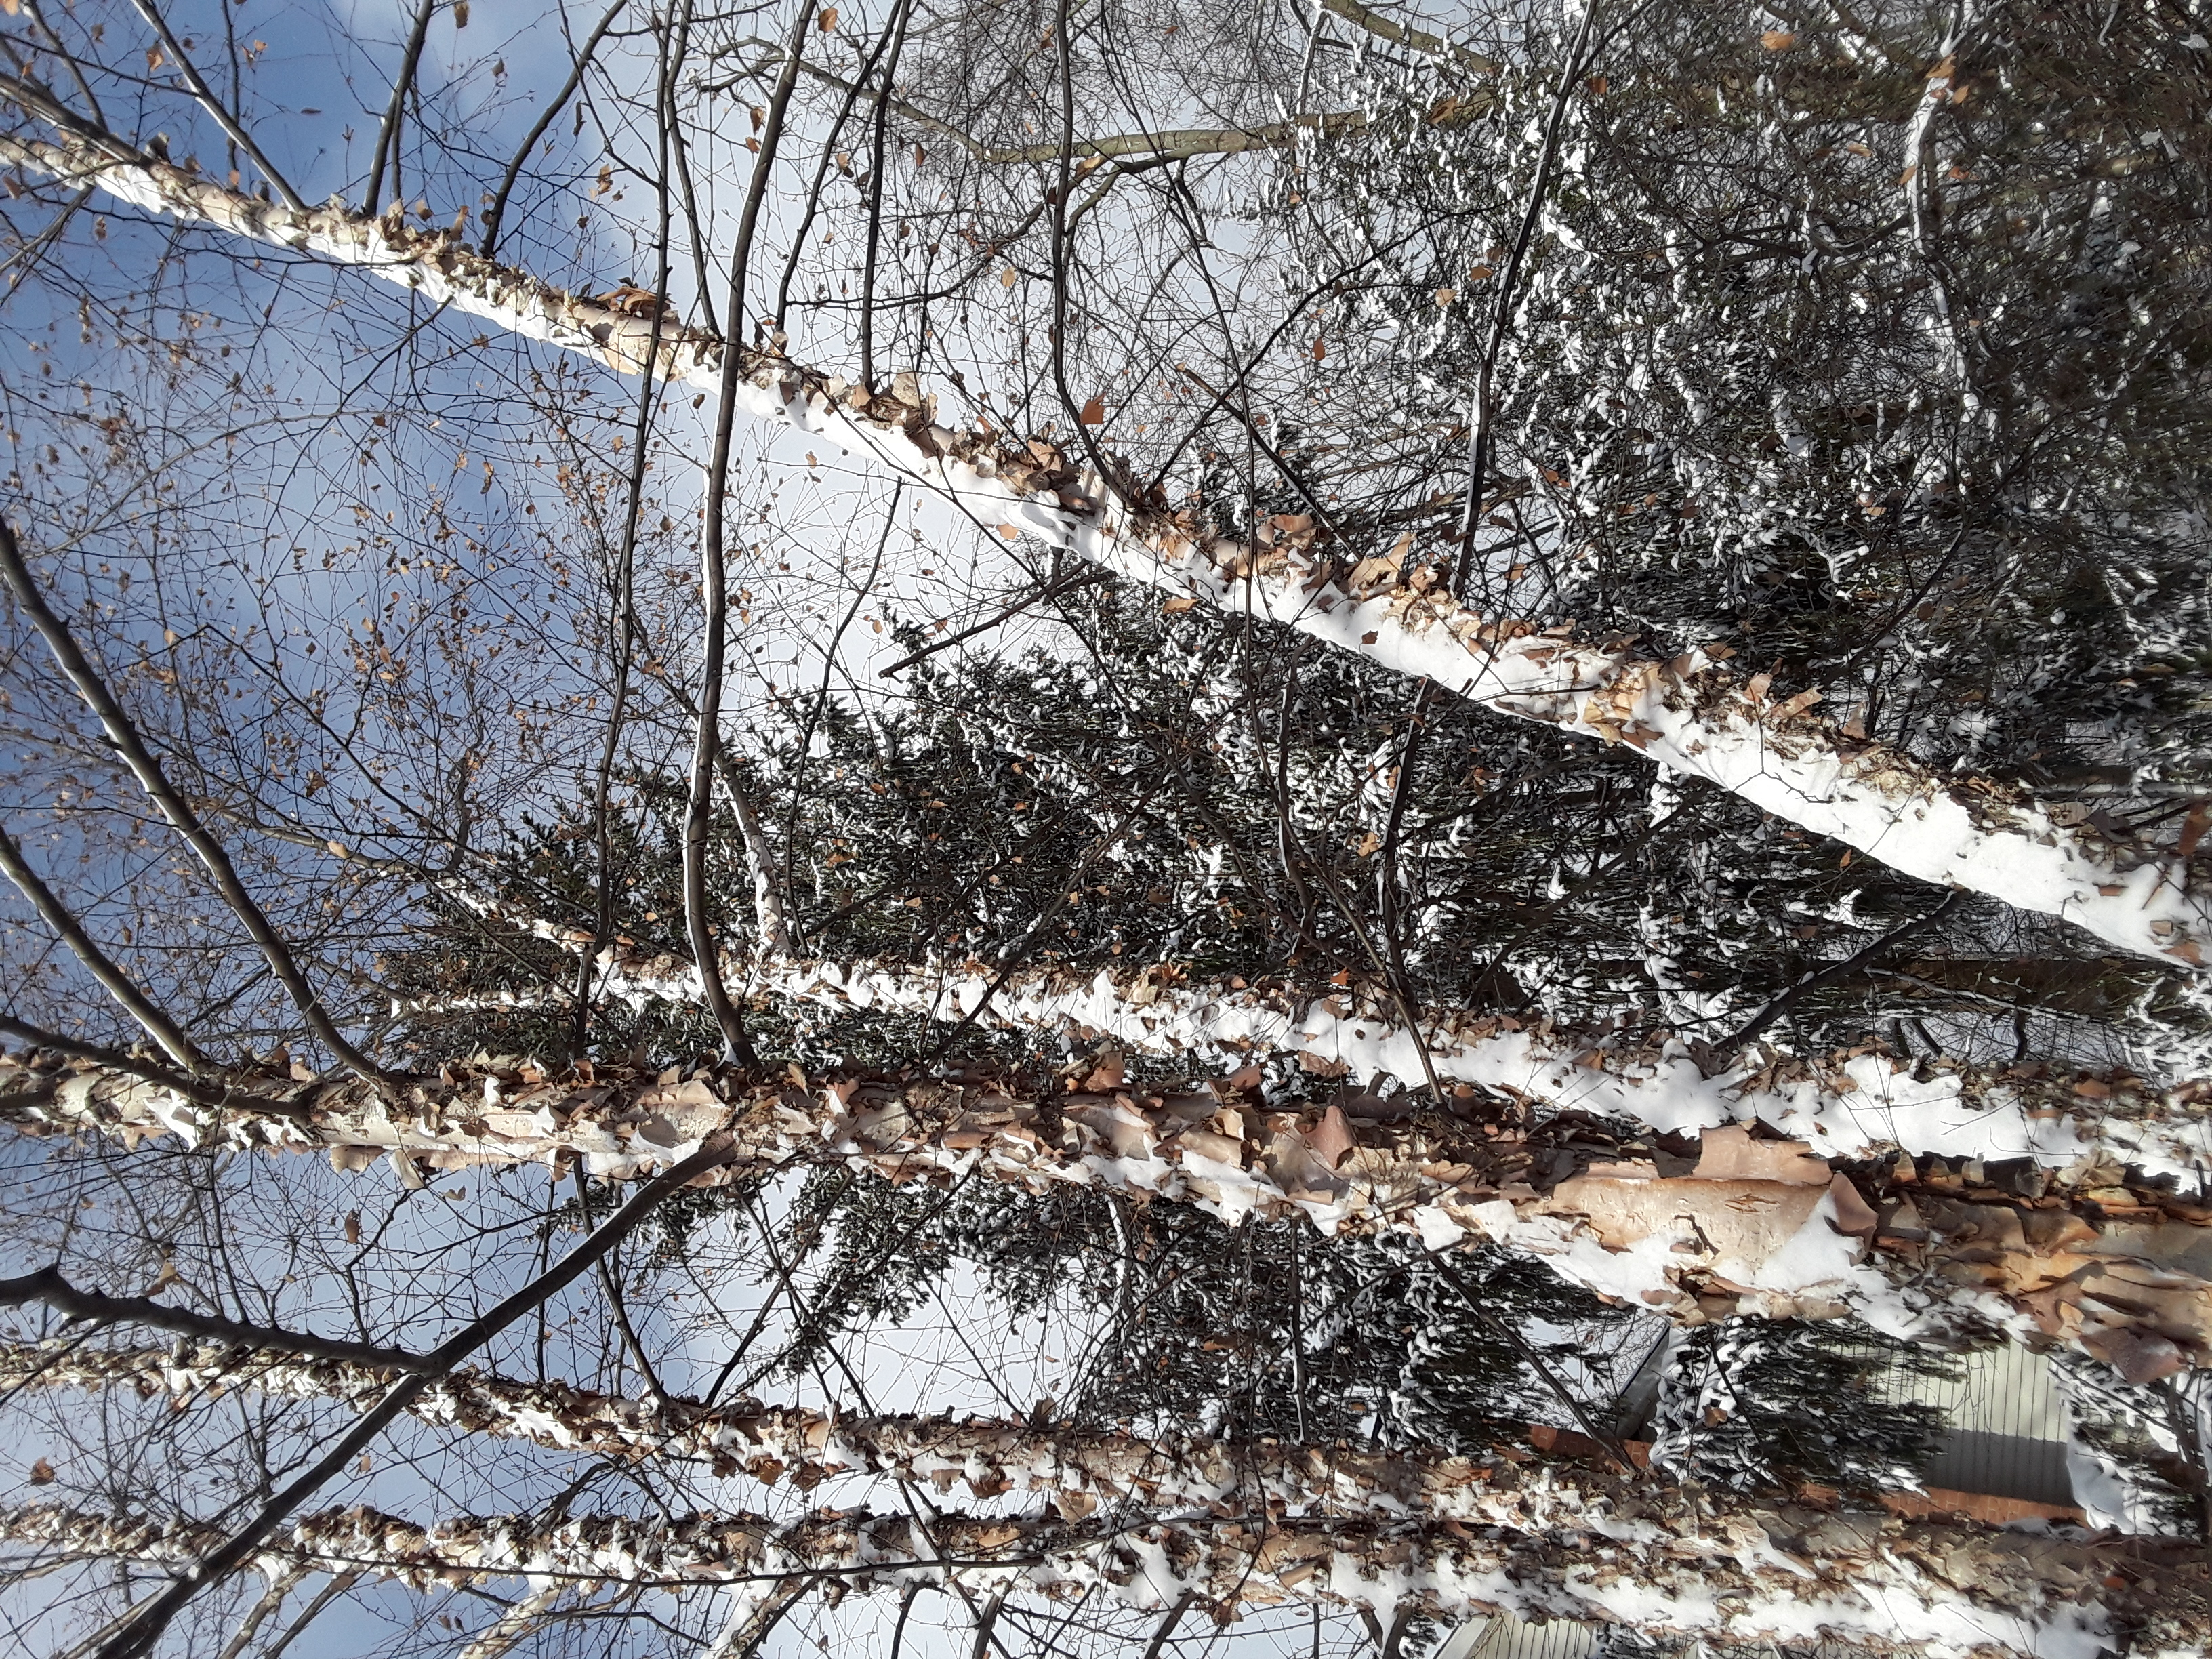 river birch and spruce against a blue winter sky